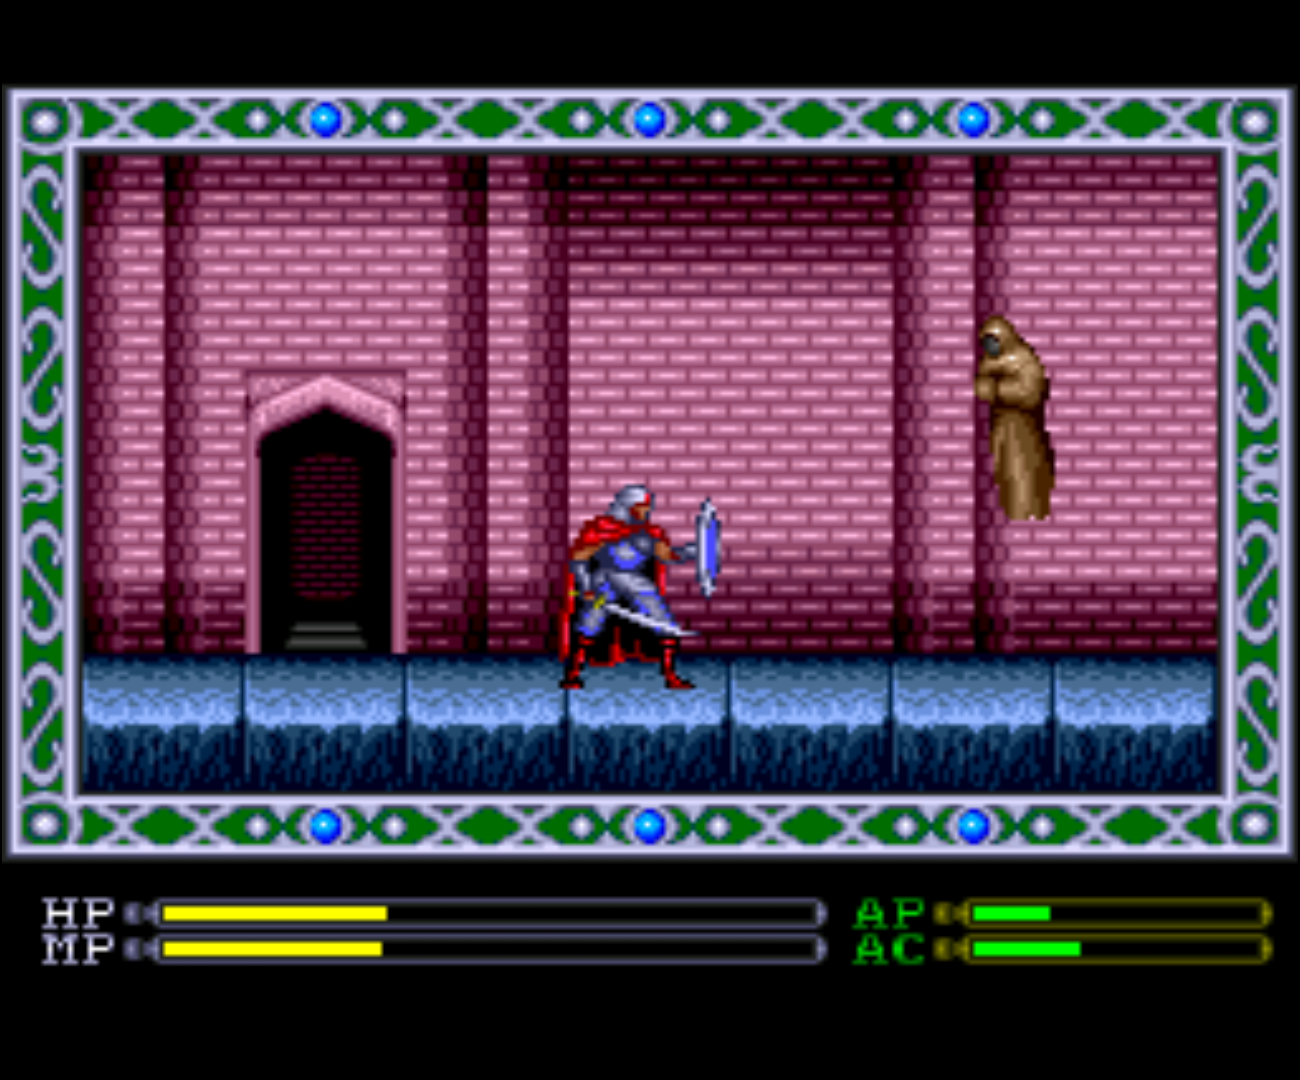 Figure 10 - The action part of the game is actually quite fun, once you reach a certain level